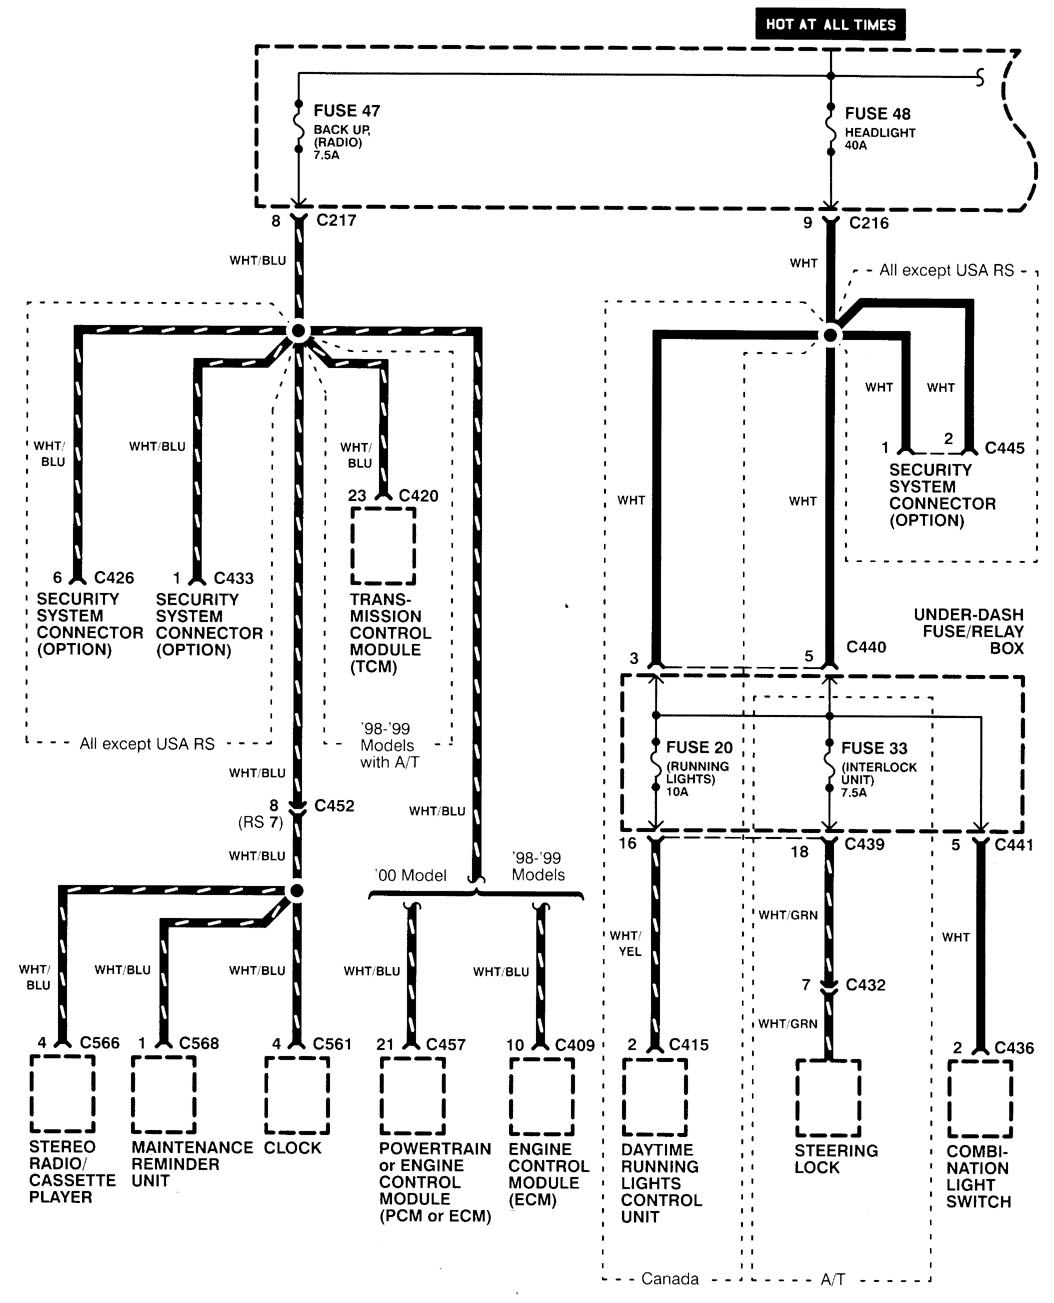 Integra Gsr Fuse Diagram Great Design Of Wiring 1995 Acura Turn Signal 2000 Auto 97